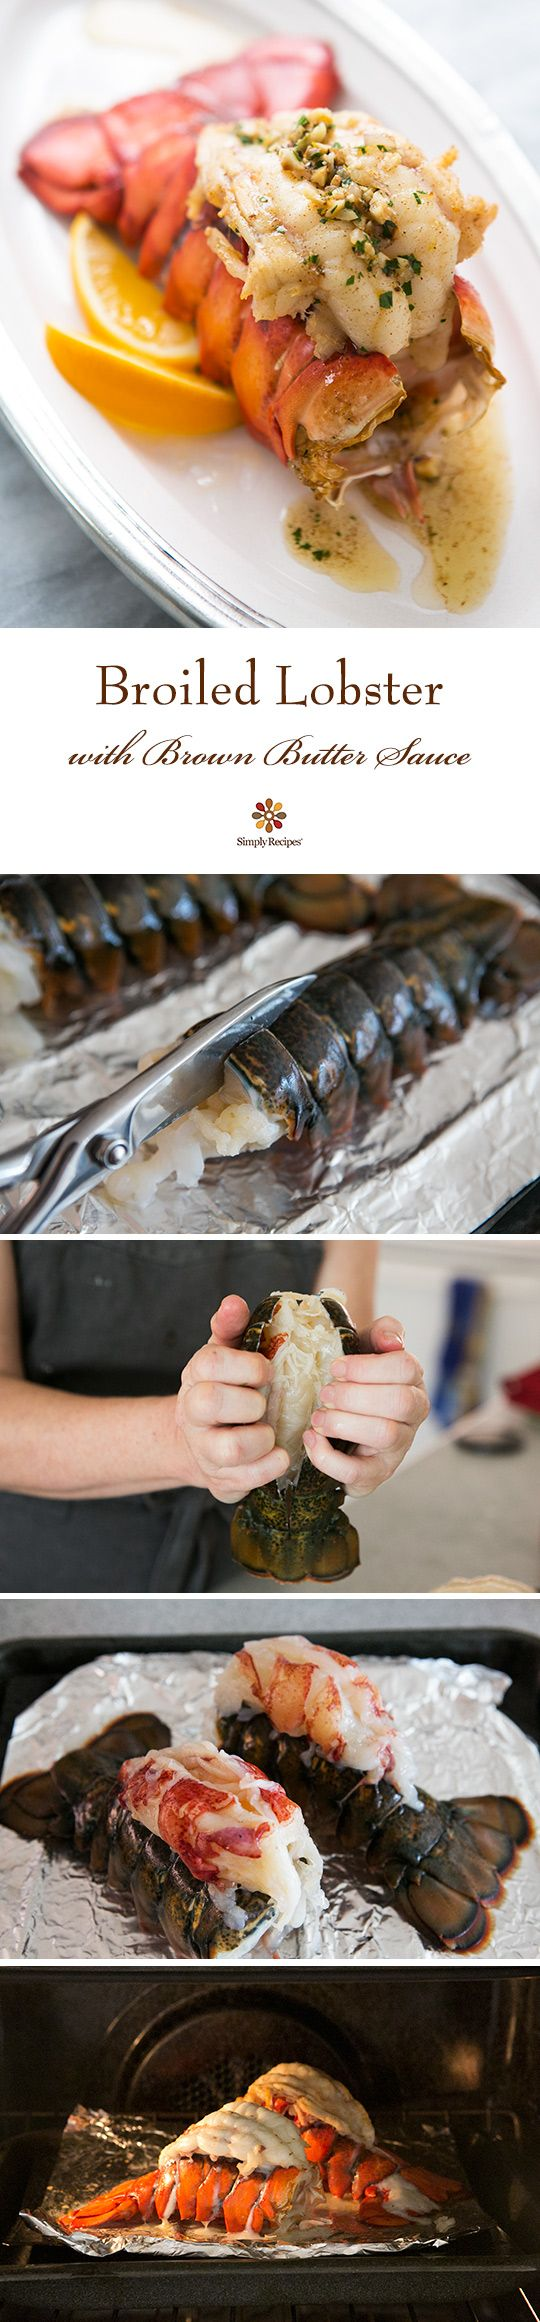 how to cook lobster tail on the barbecue